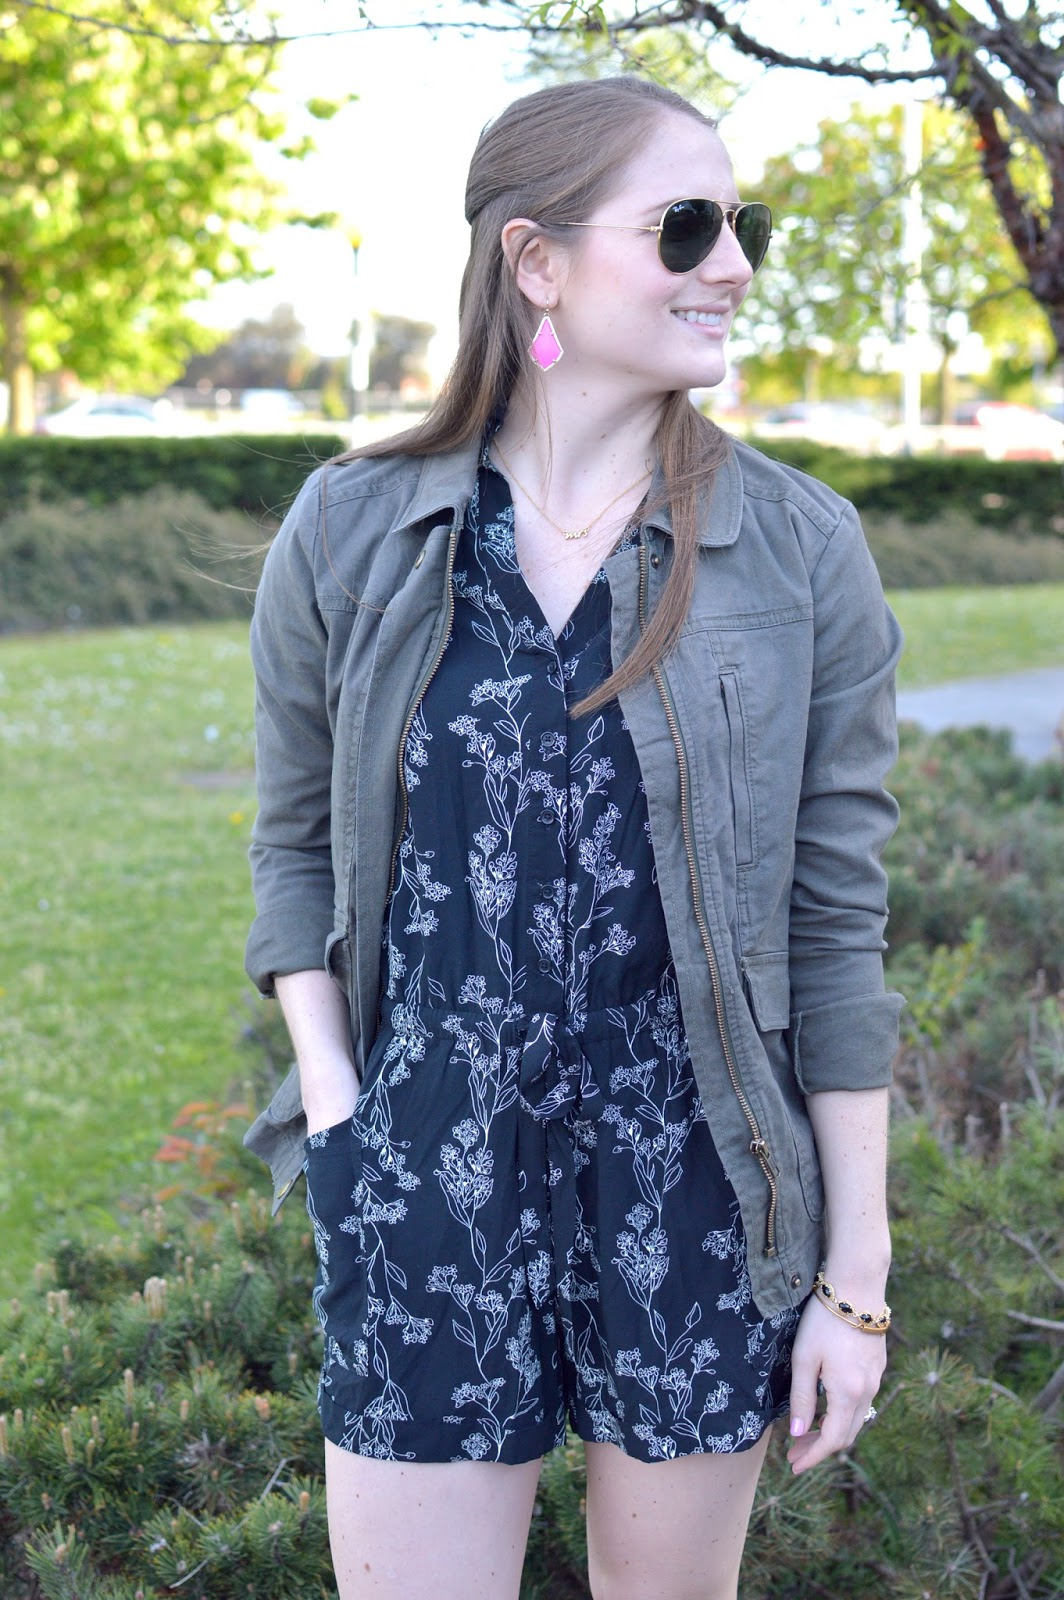 black romper styling ideas | spring outfit ideas| what to wear with a military jacket | kendra scott pink earrings | spring outfit ideas | a memory of us | black floral romper |